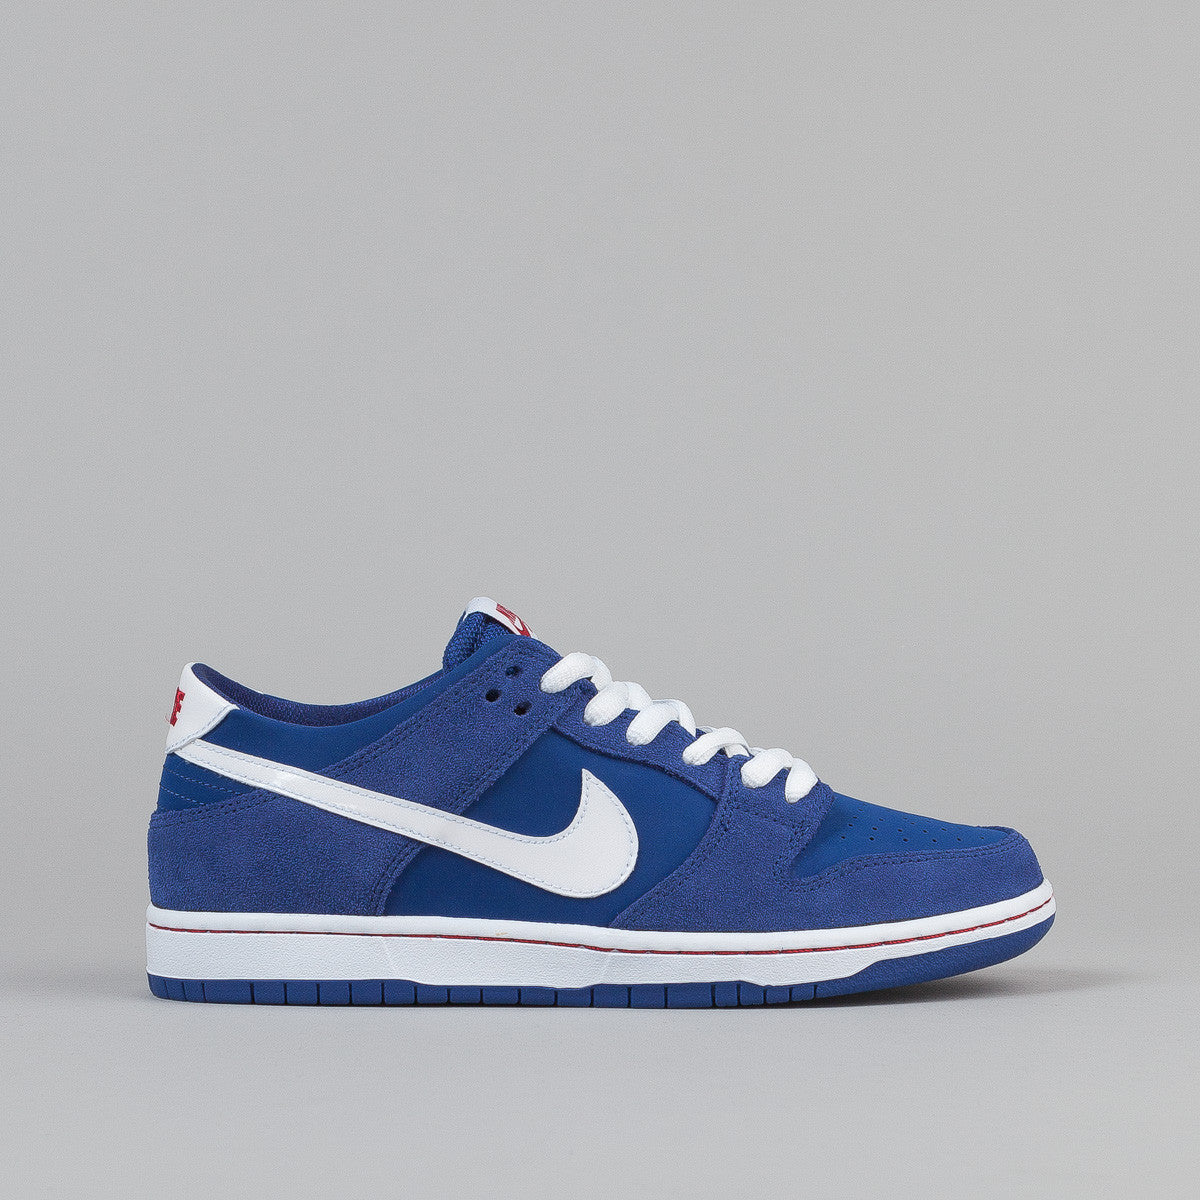 Nike SB Dunk Low Pro Ishod Wair Shoes - Deep Royal / White - Gym Red